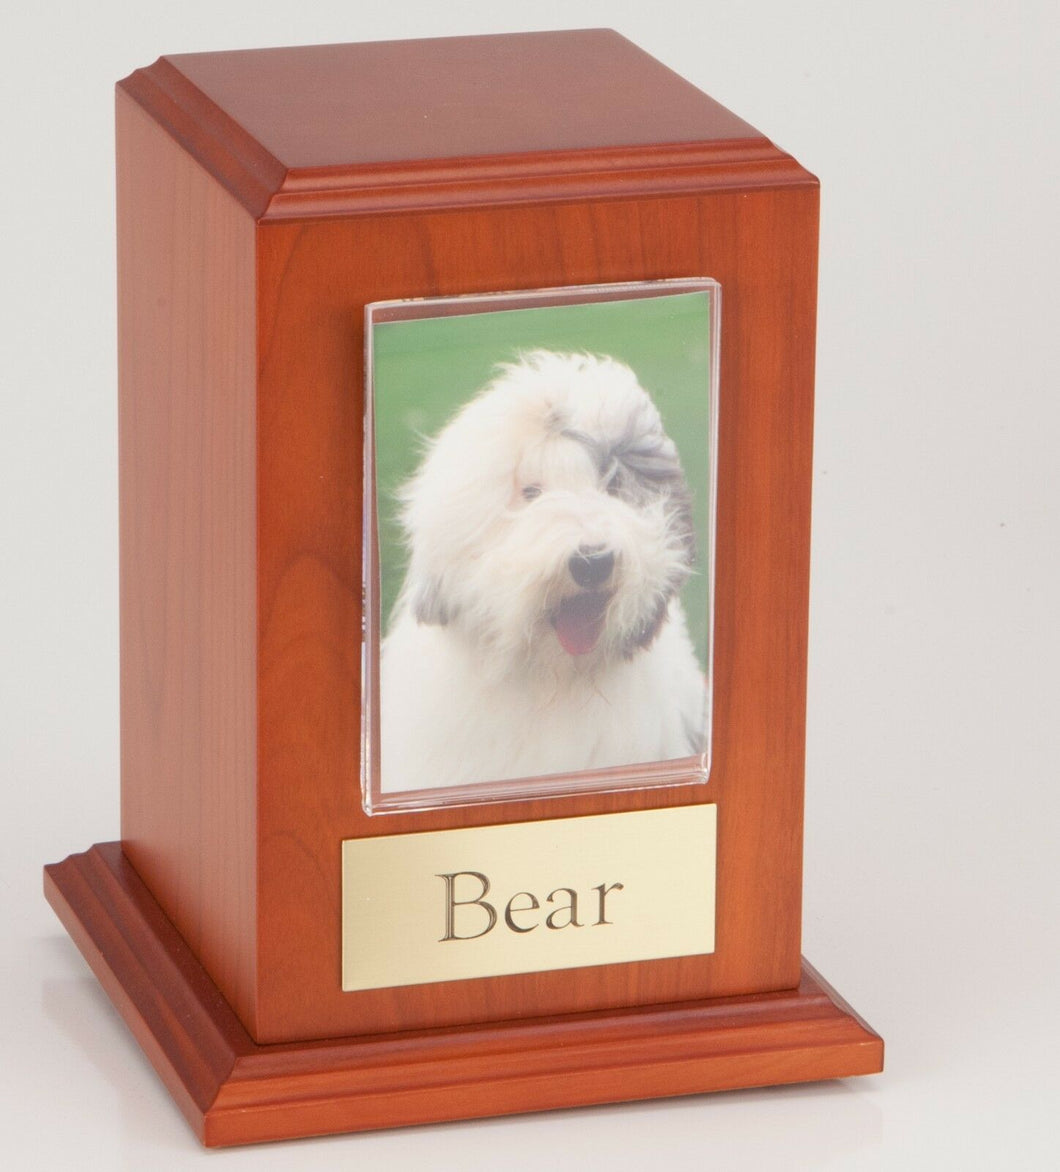 Large 110 Cubic Ins Cherry Pet Tower Photo Urn for Ashes w/Engravable Nameplate